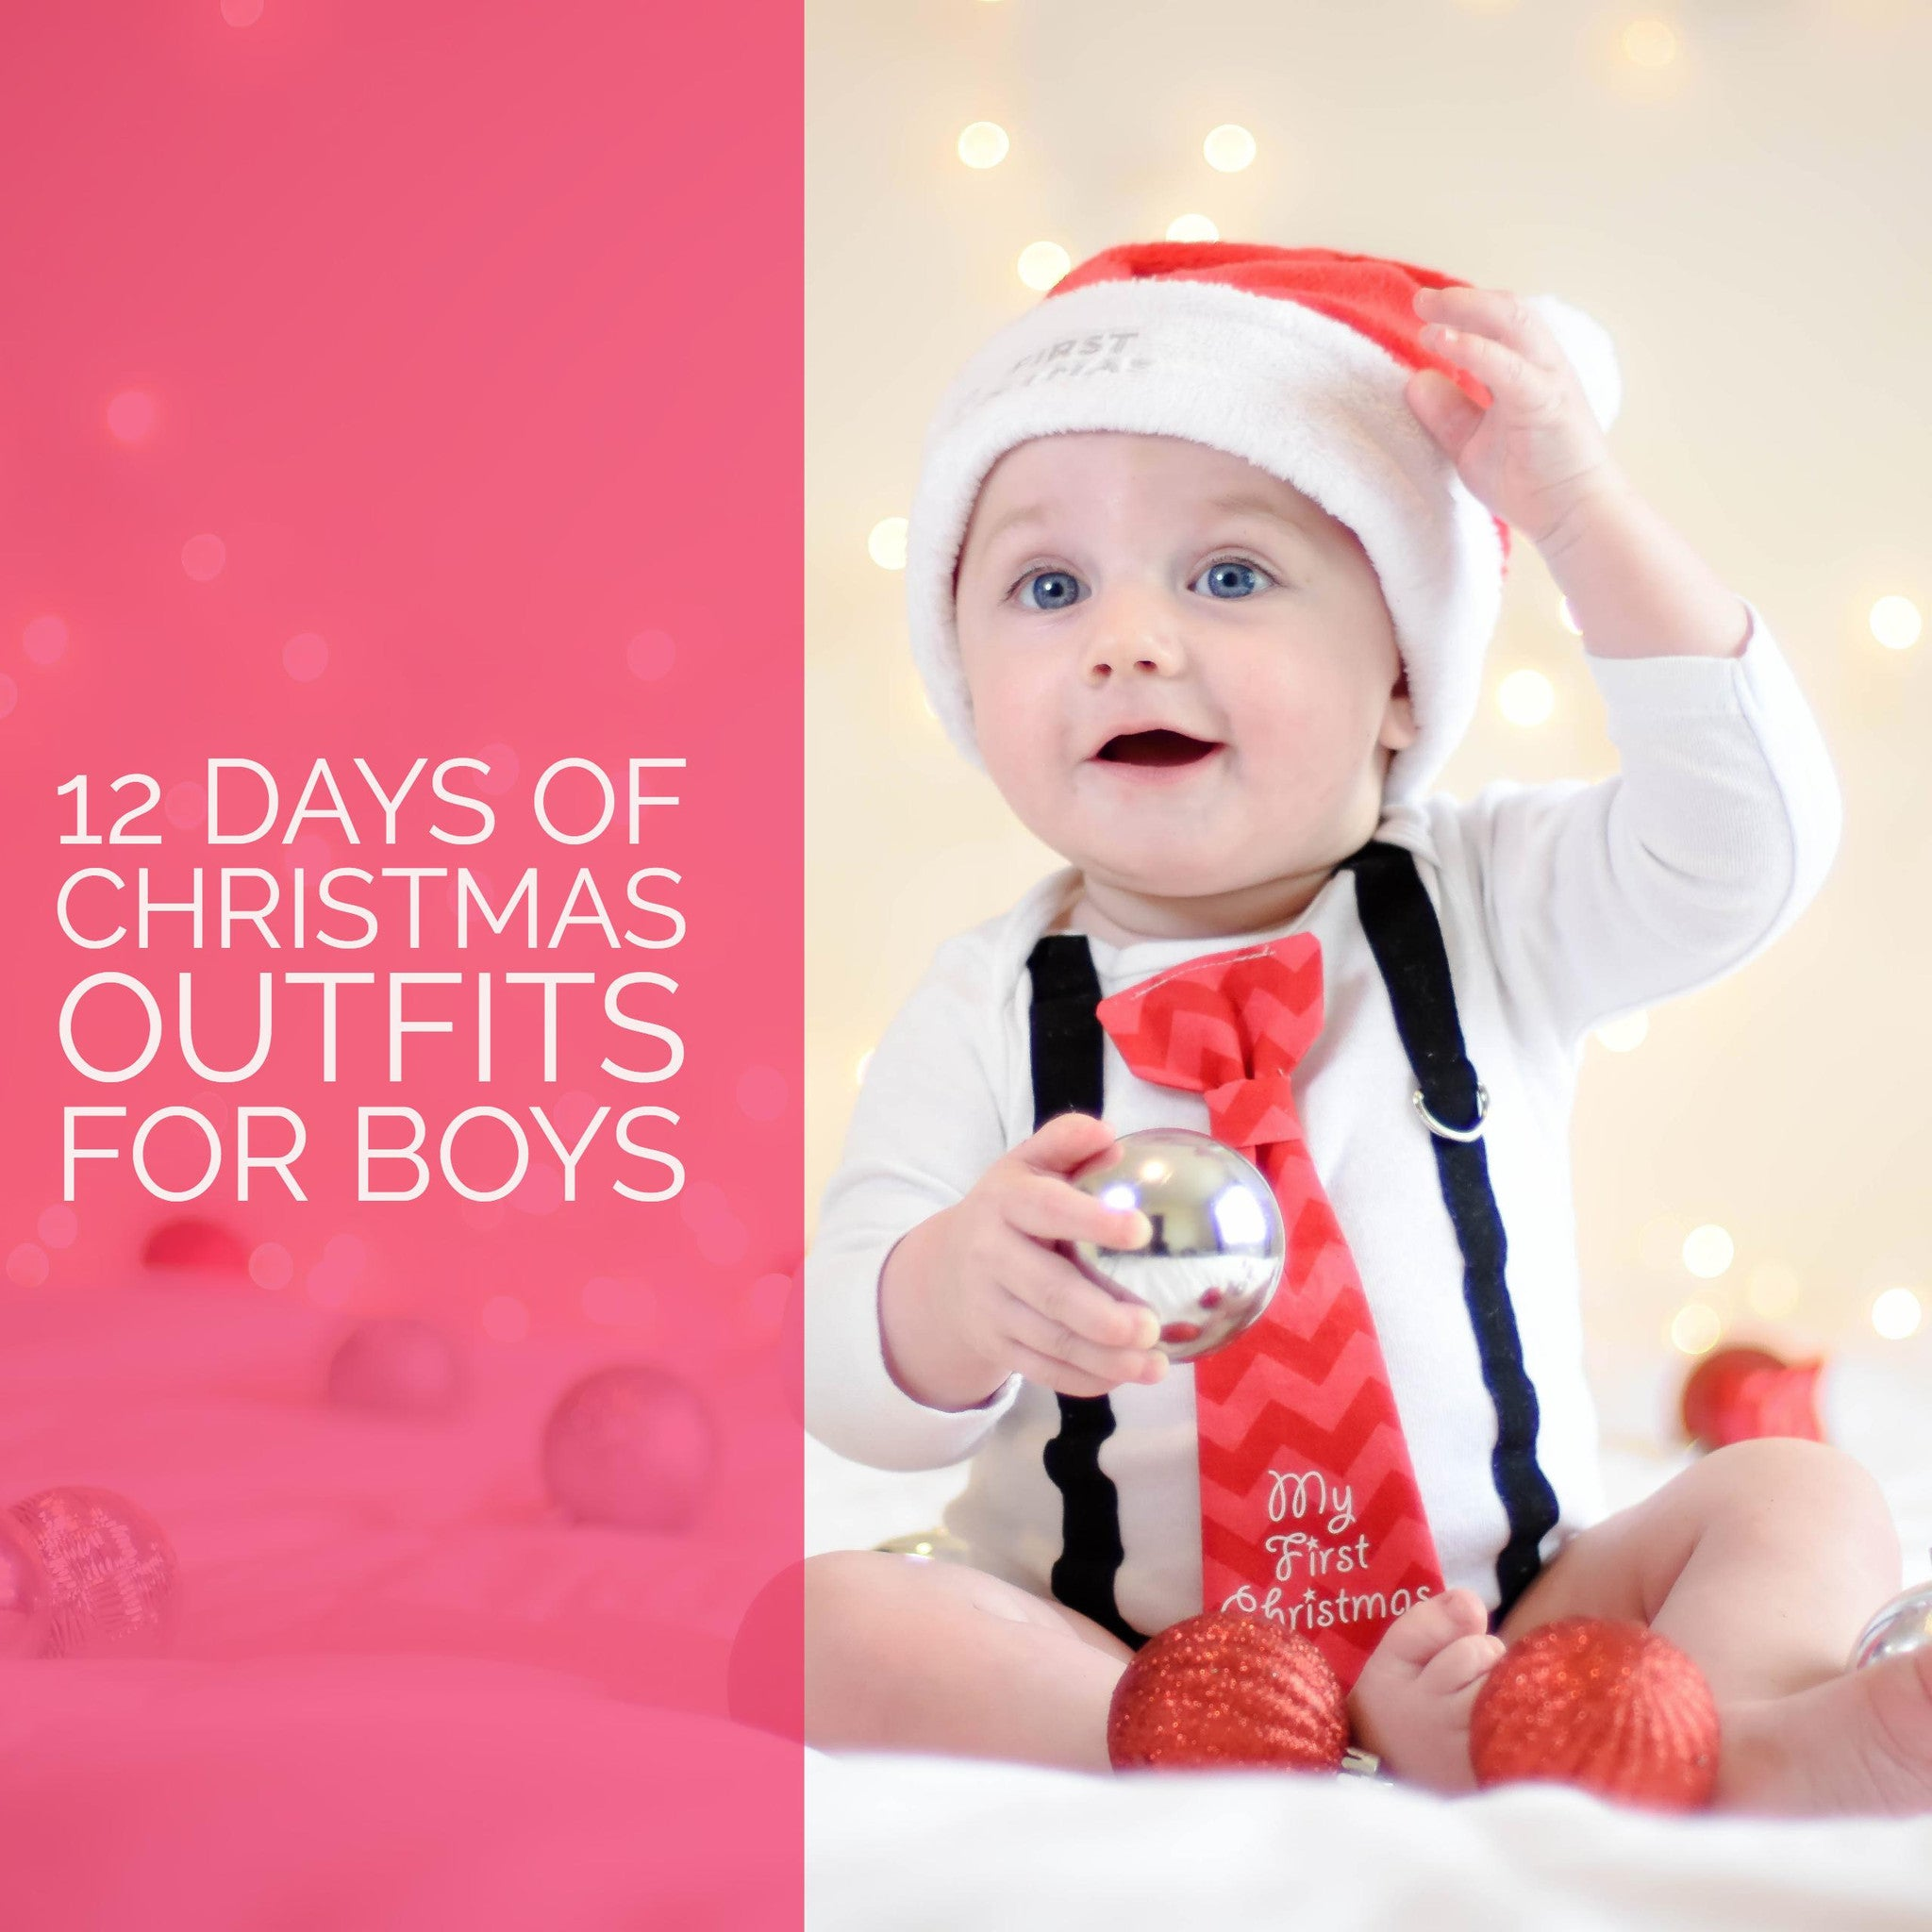 12 Days of Christmas Outfits for Boys